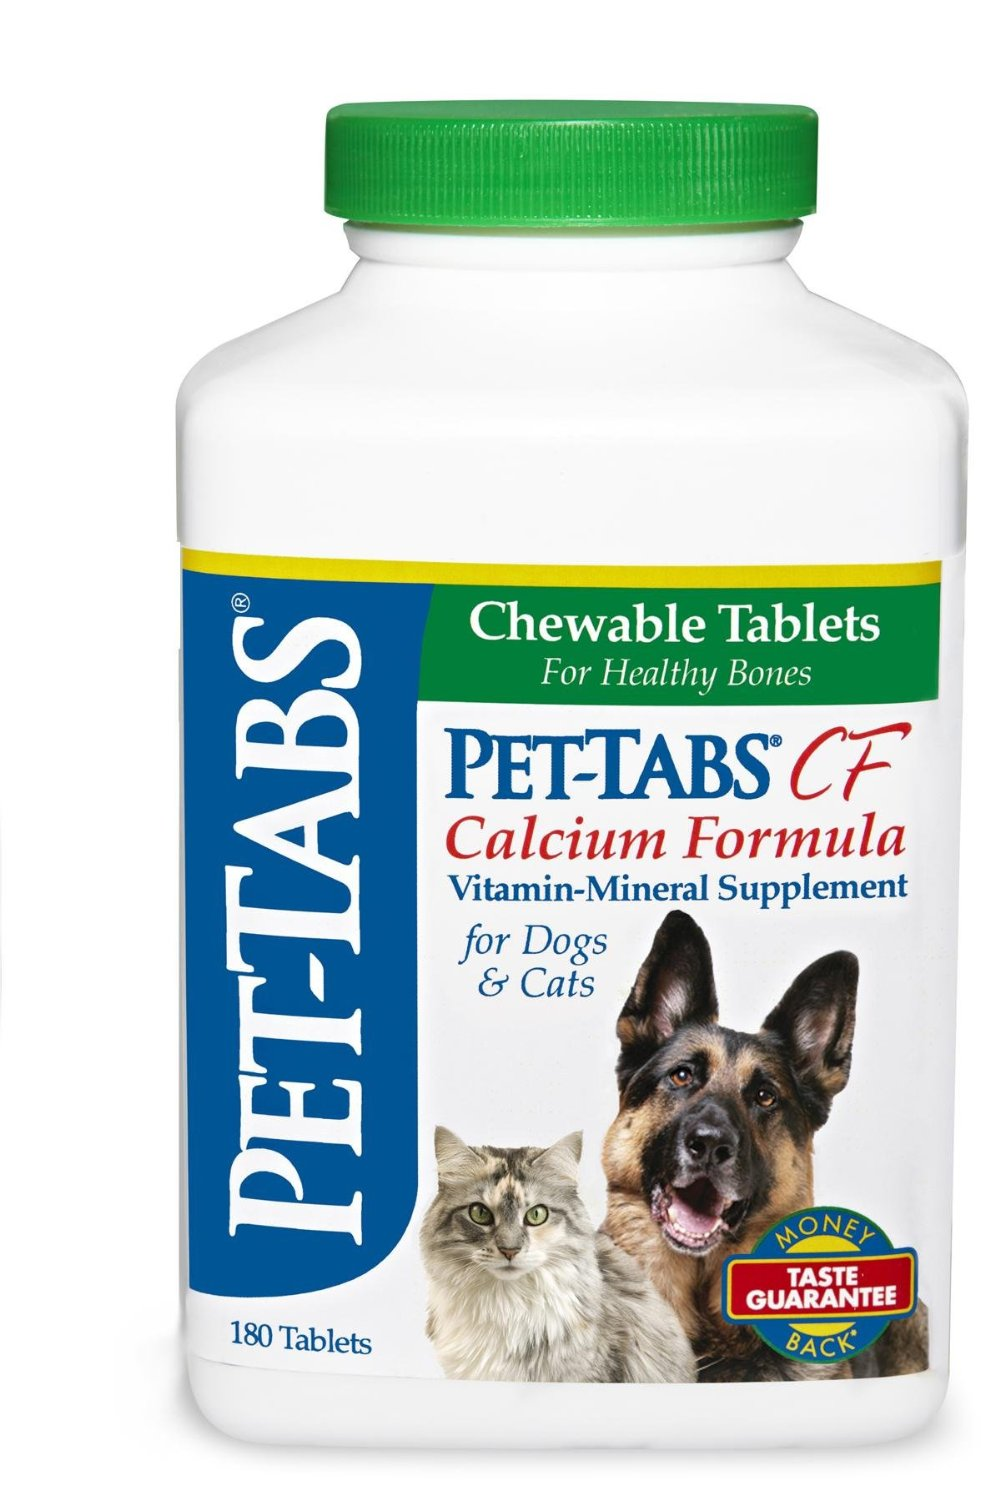 Pet-Tabs Plus Calcium Formula